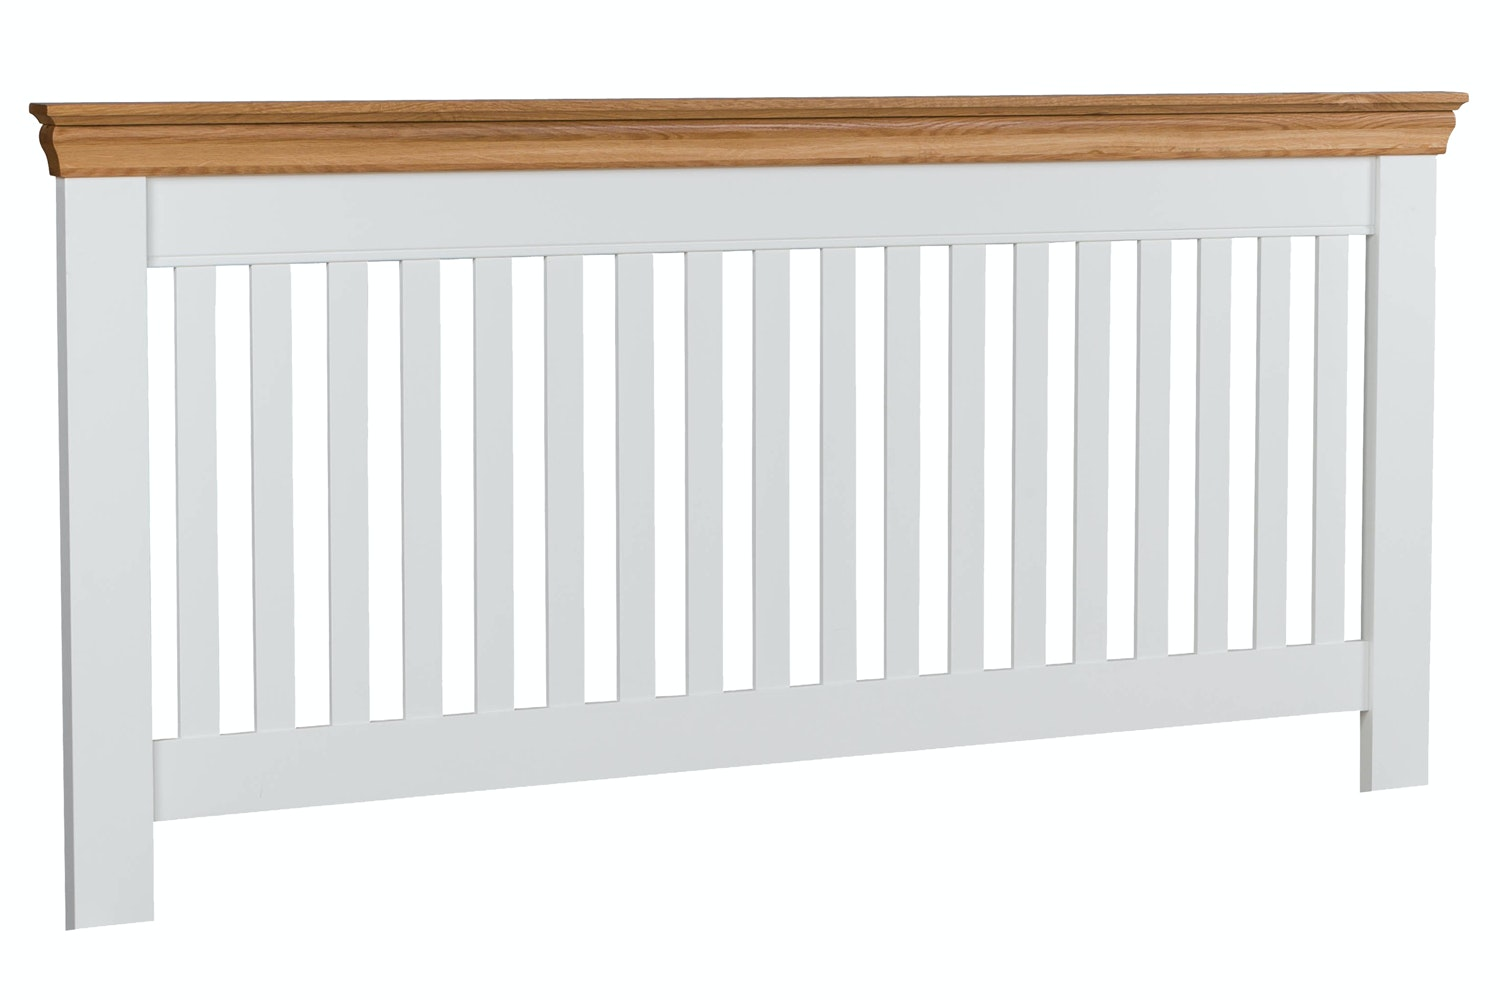 Ascott Headboard | 5ft | White & Oak